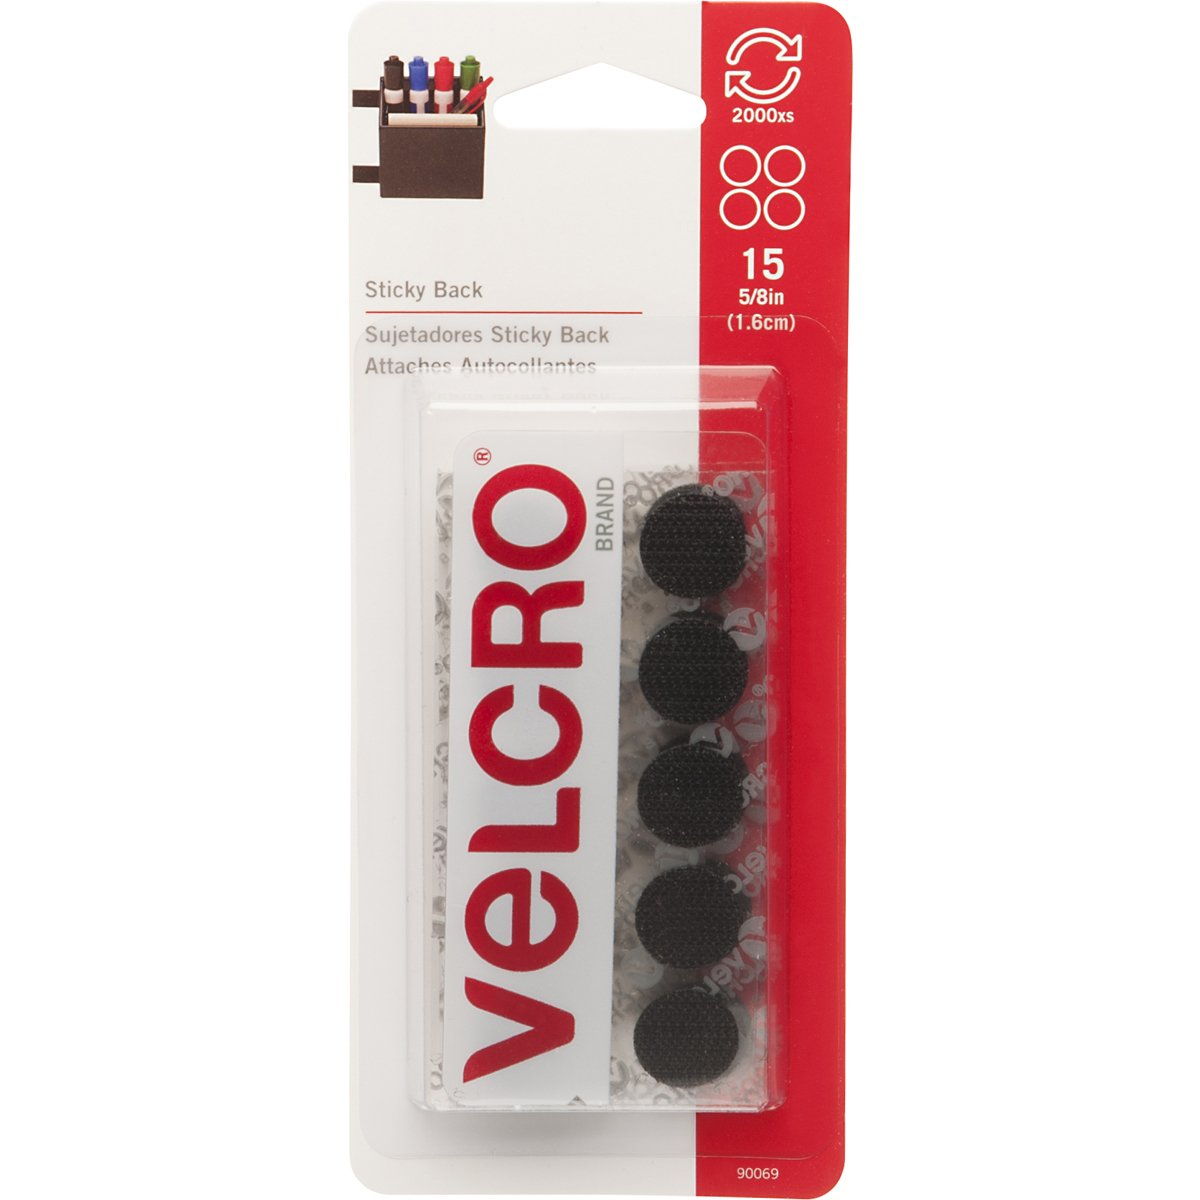 VELCRO Brand Sticky Back | Hook and Loop Fasteners | Keep Things Organized and Connected | 3 1/2 x 3/4in | 10 Strips, Black Velcro USA Inc. 90161